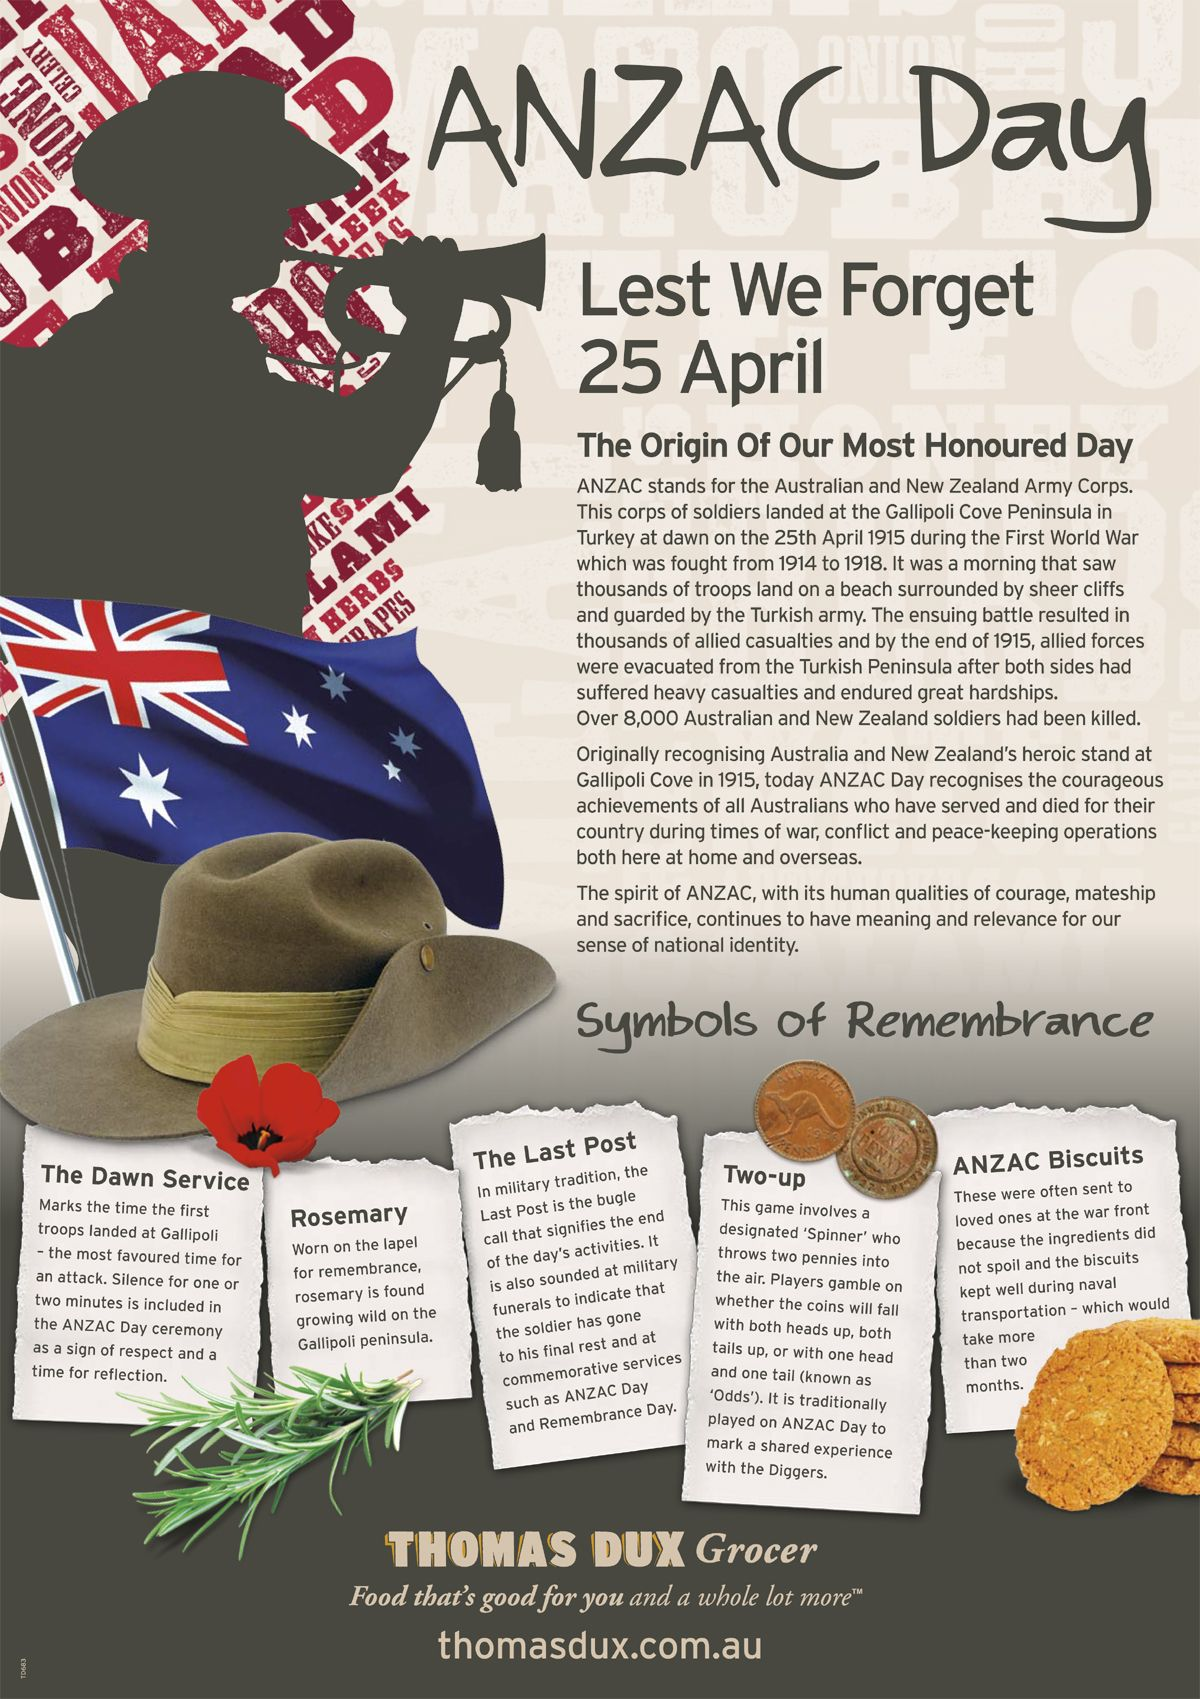 anzac meaning - photo #28